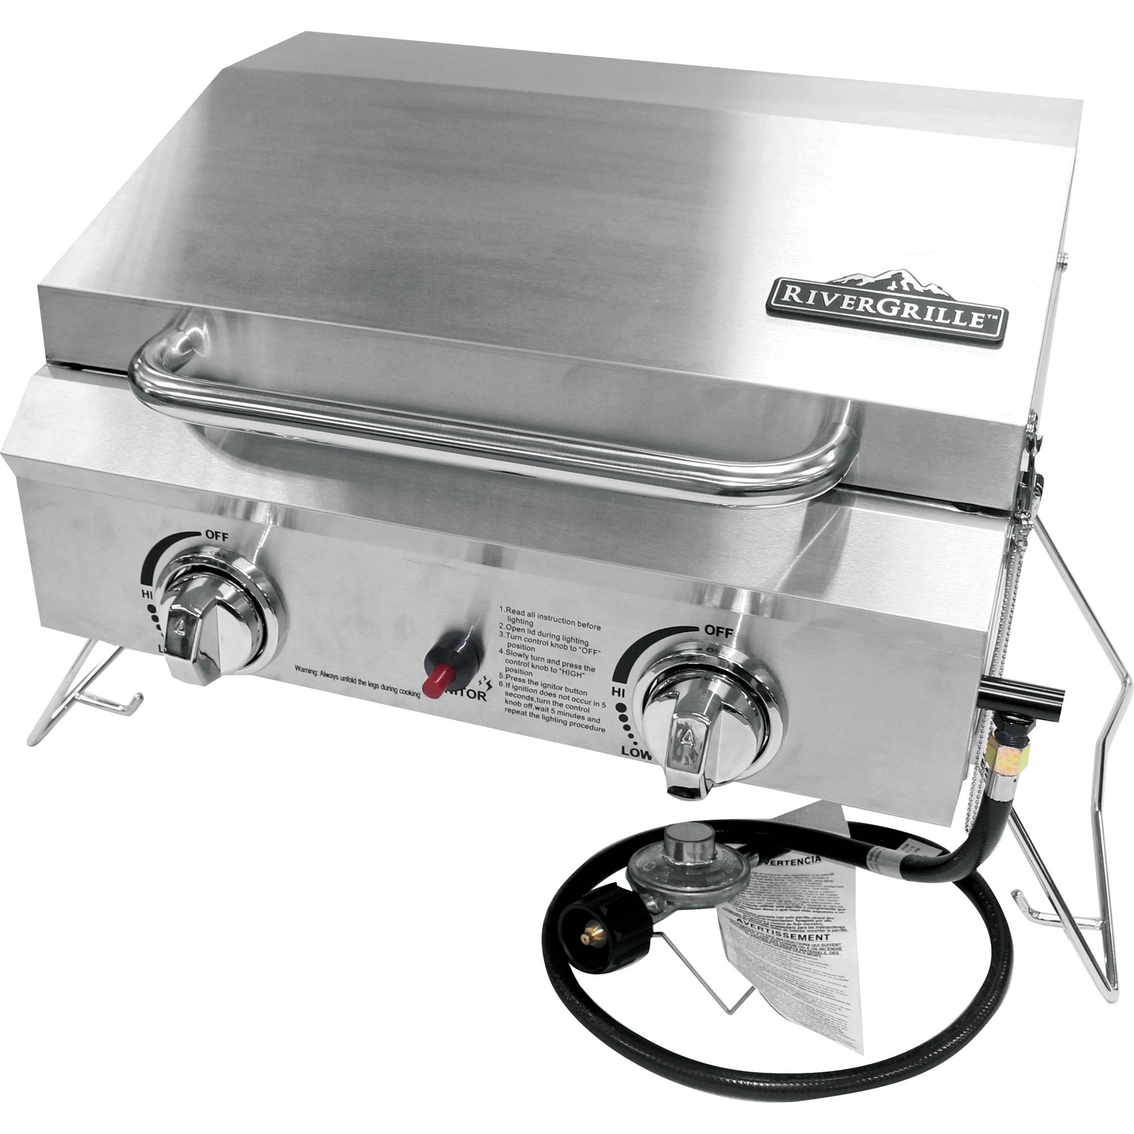 Rivergrille portable burner stainless steel gas grill